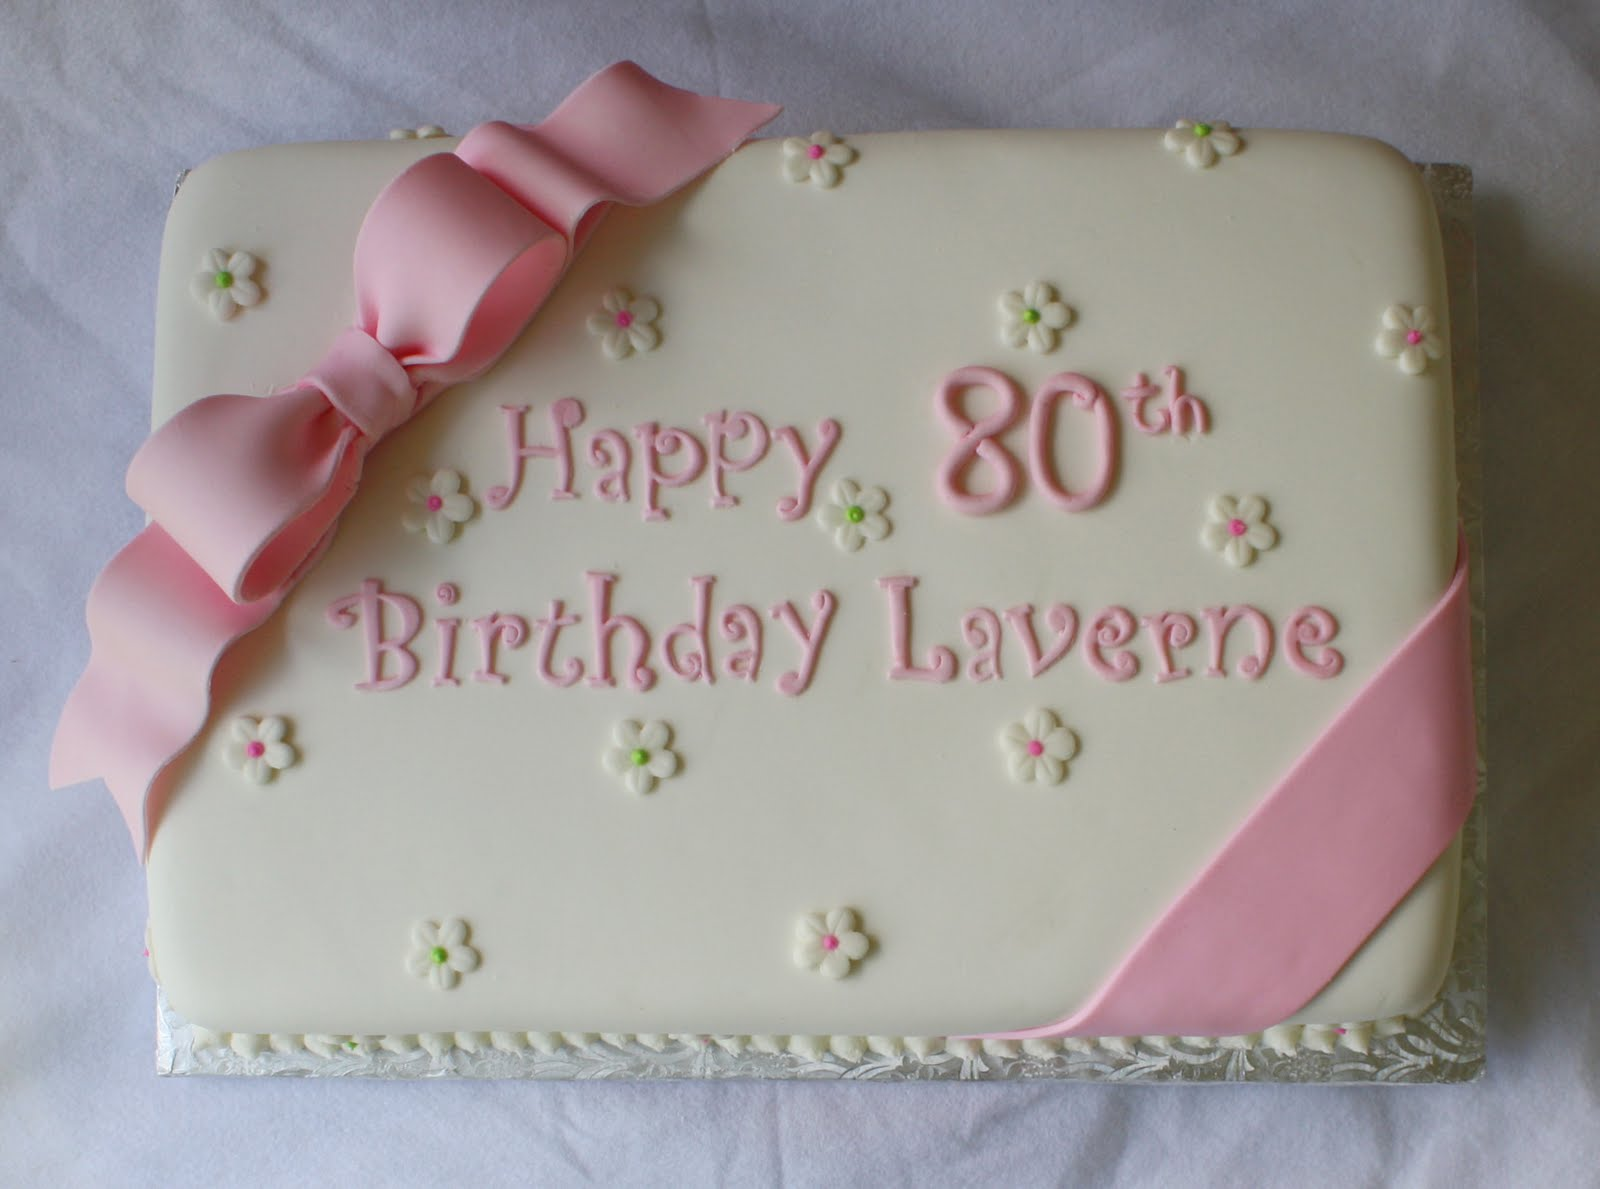 Enjoyable Pink Green Sheet Cakes For 1St And 80Th Birthdays Personalised Birthday Cards Veneteletsinfo